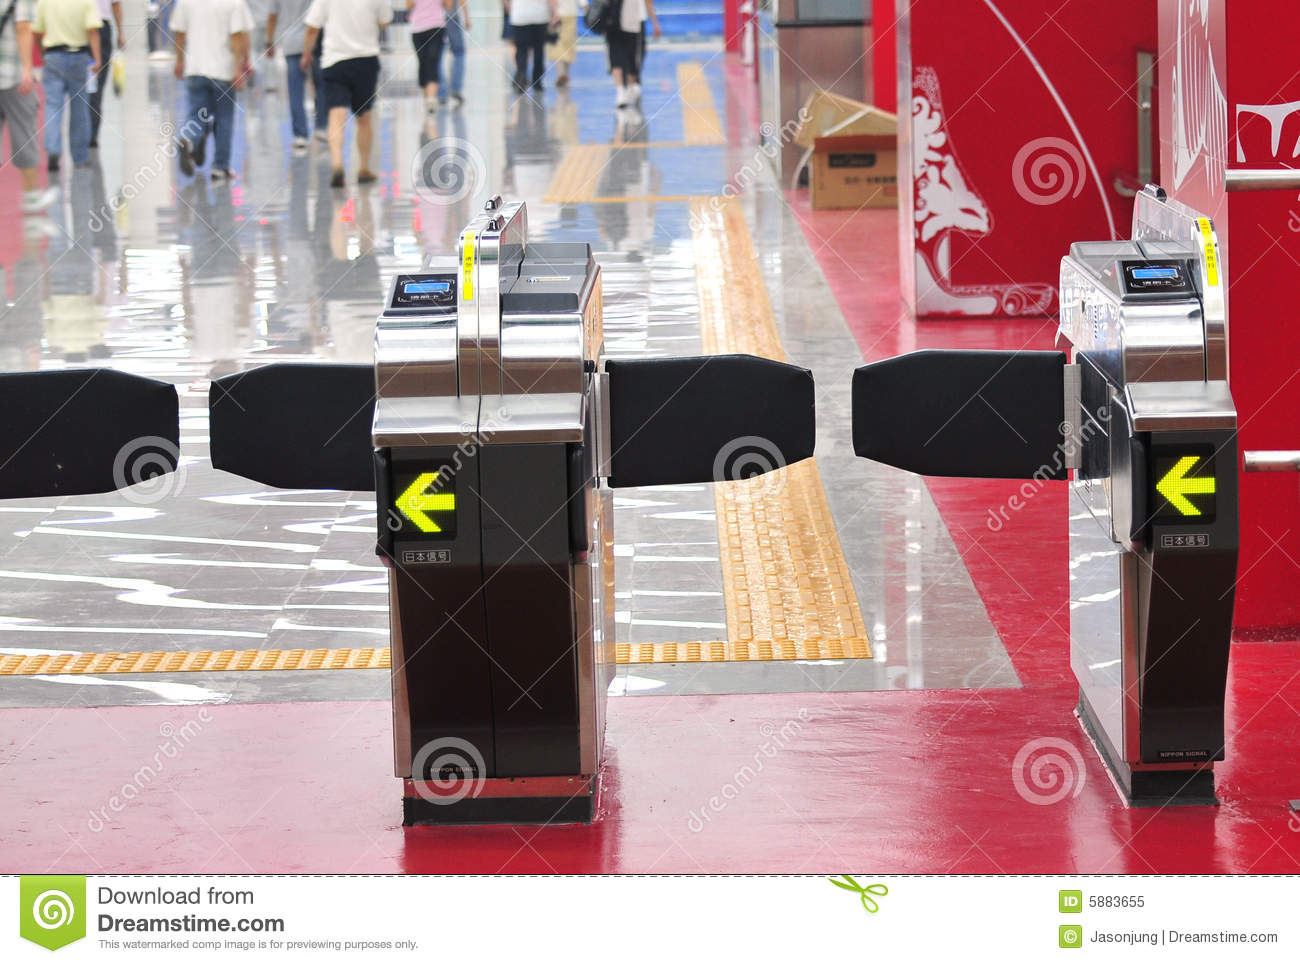 Security Gate Royalty Free Stock Photo   Image  5883655